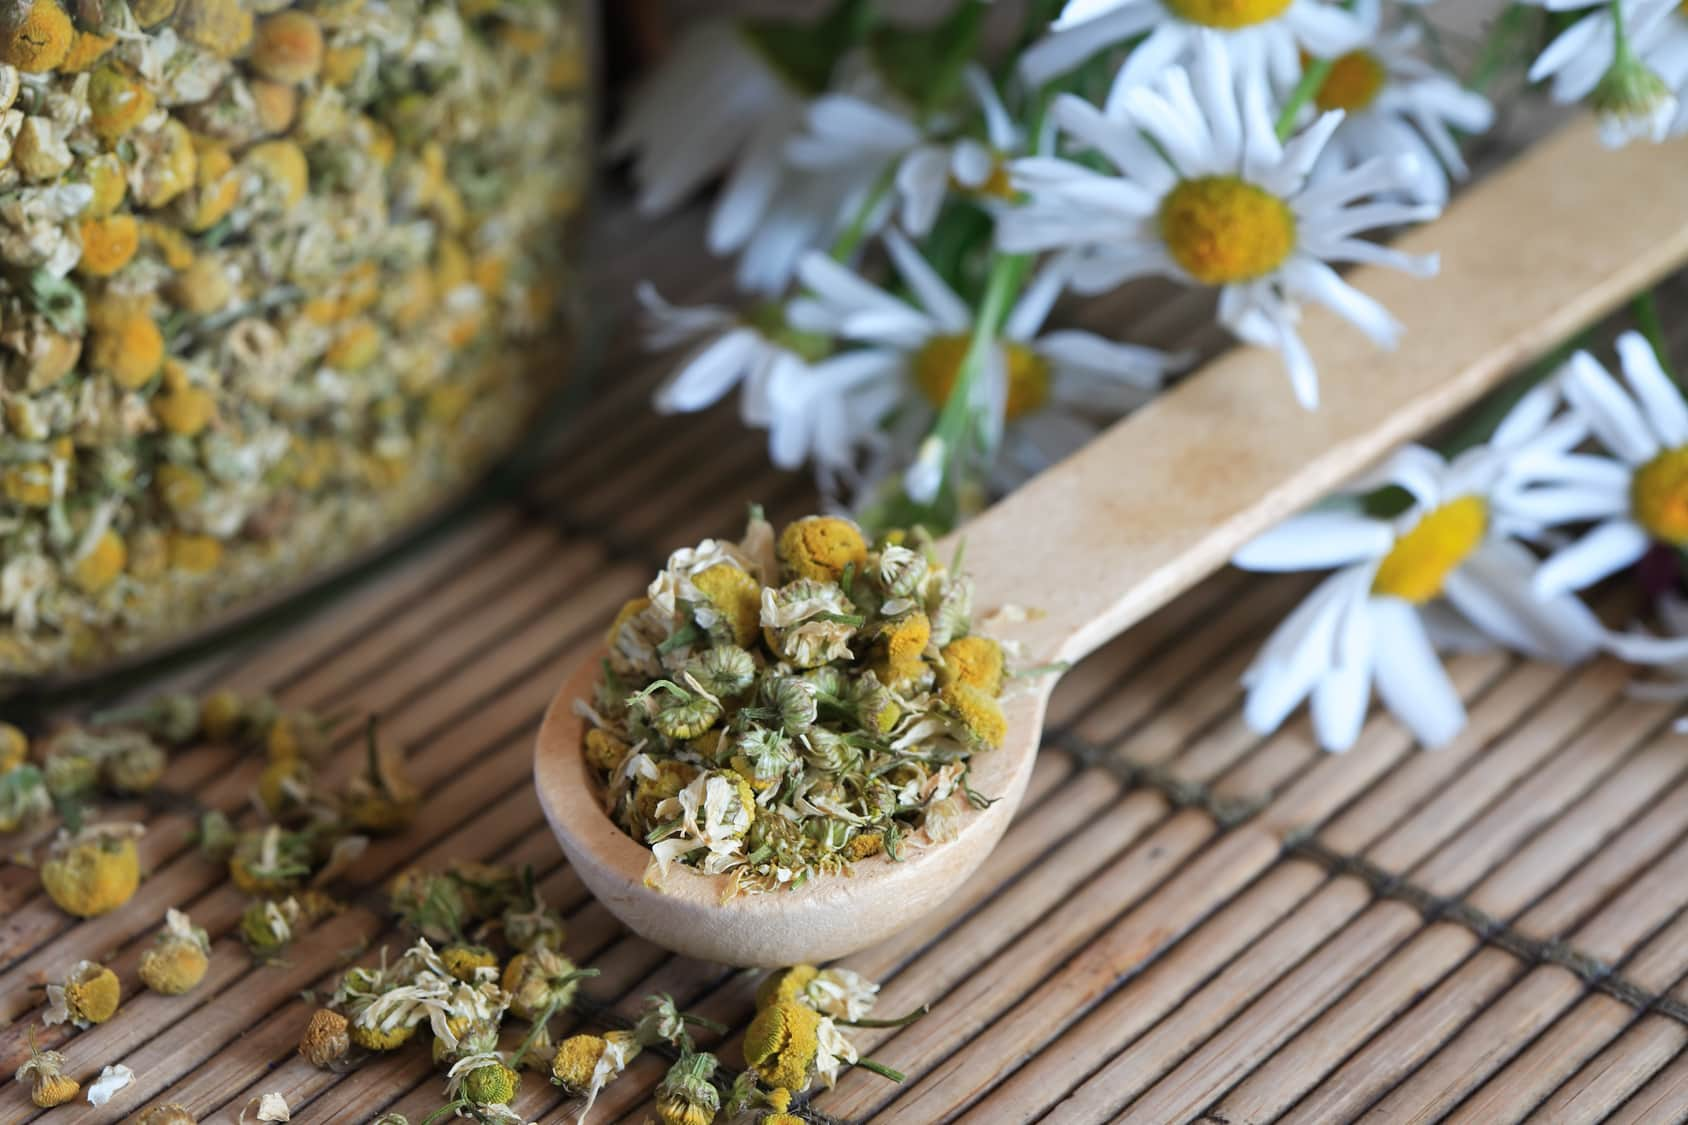 Comforting Chamomile: The Healing Herbimage preview